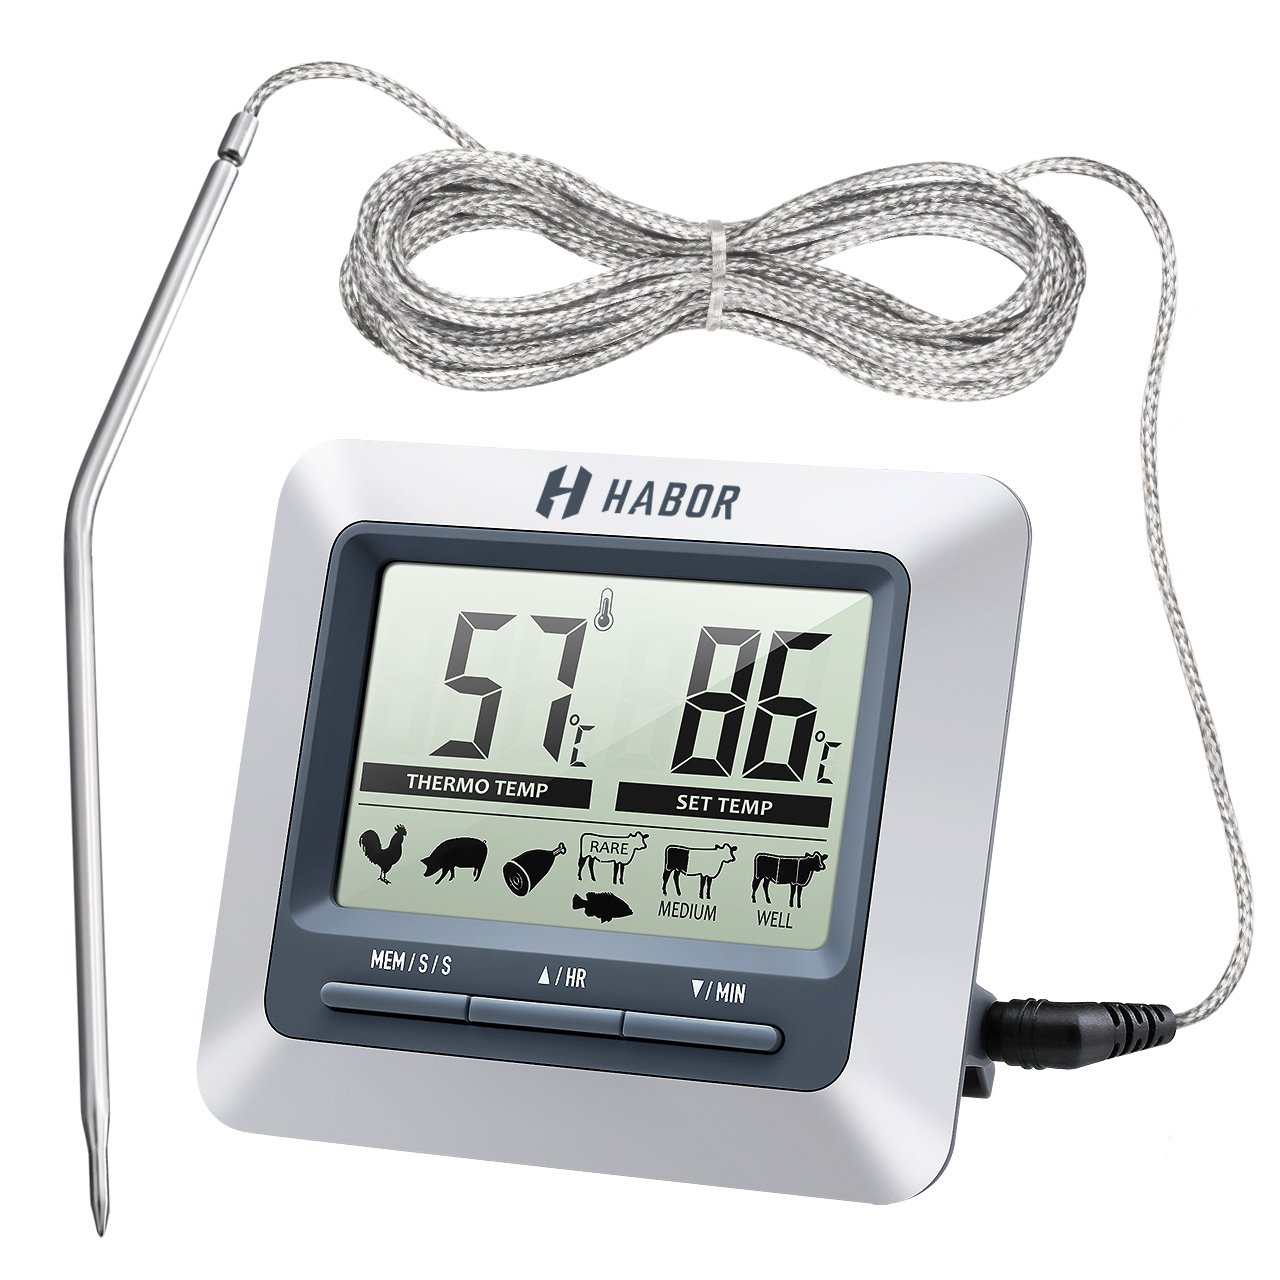 HABOR Grillthermometer HCP5H im Test